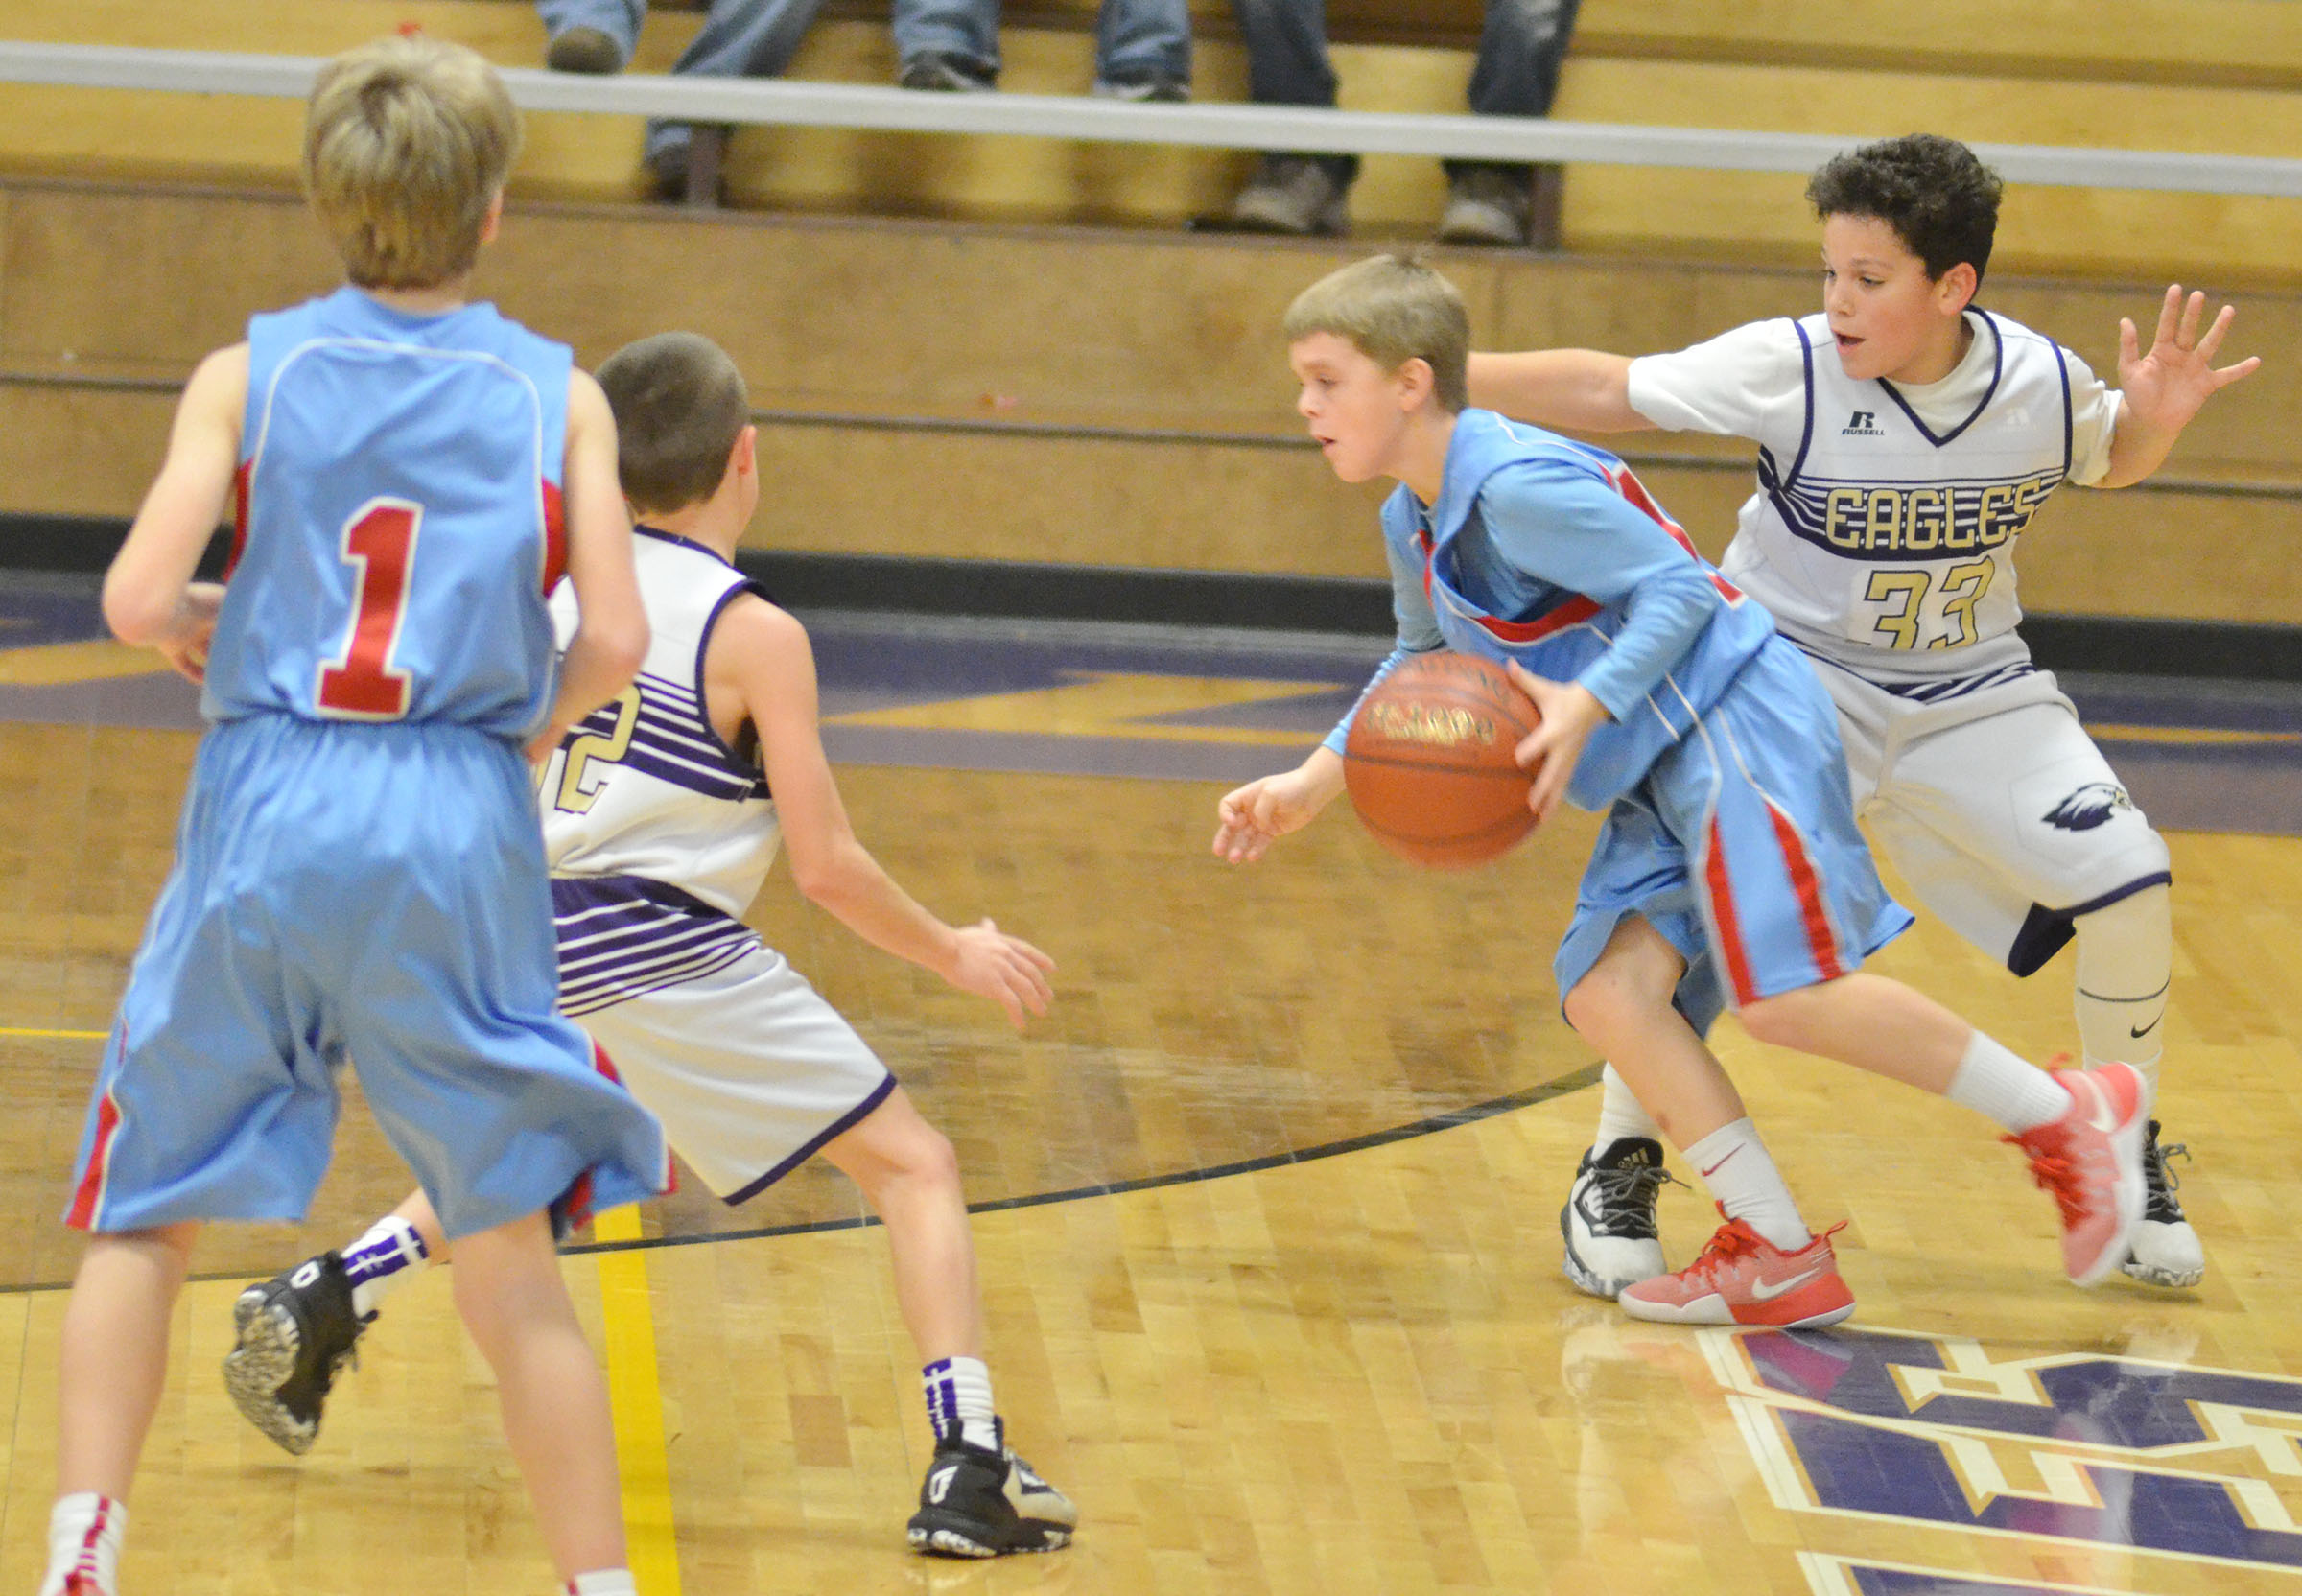 CMS sixth-grader Kaydon Taylor plays defense.